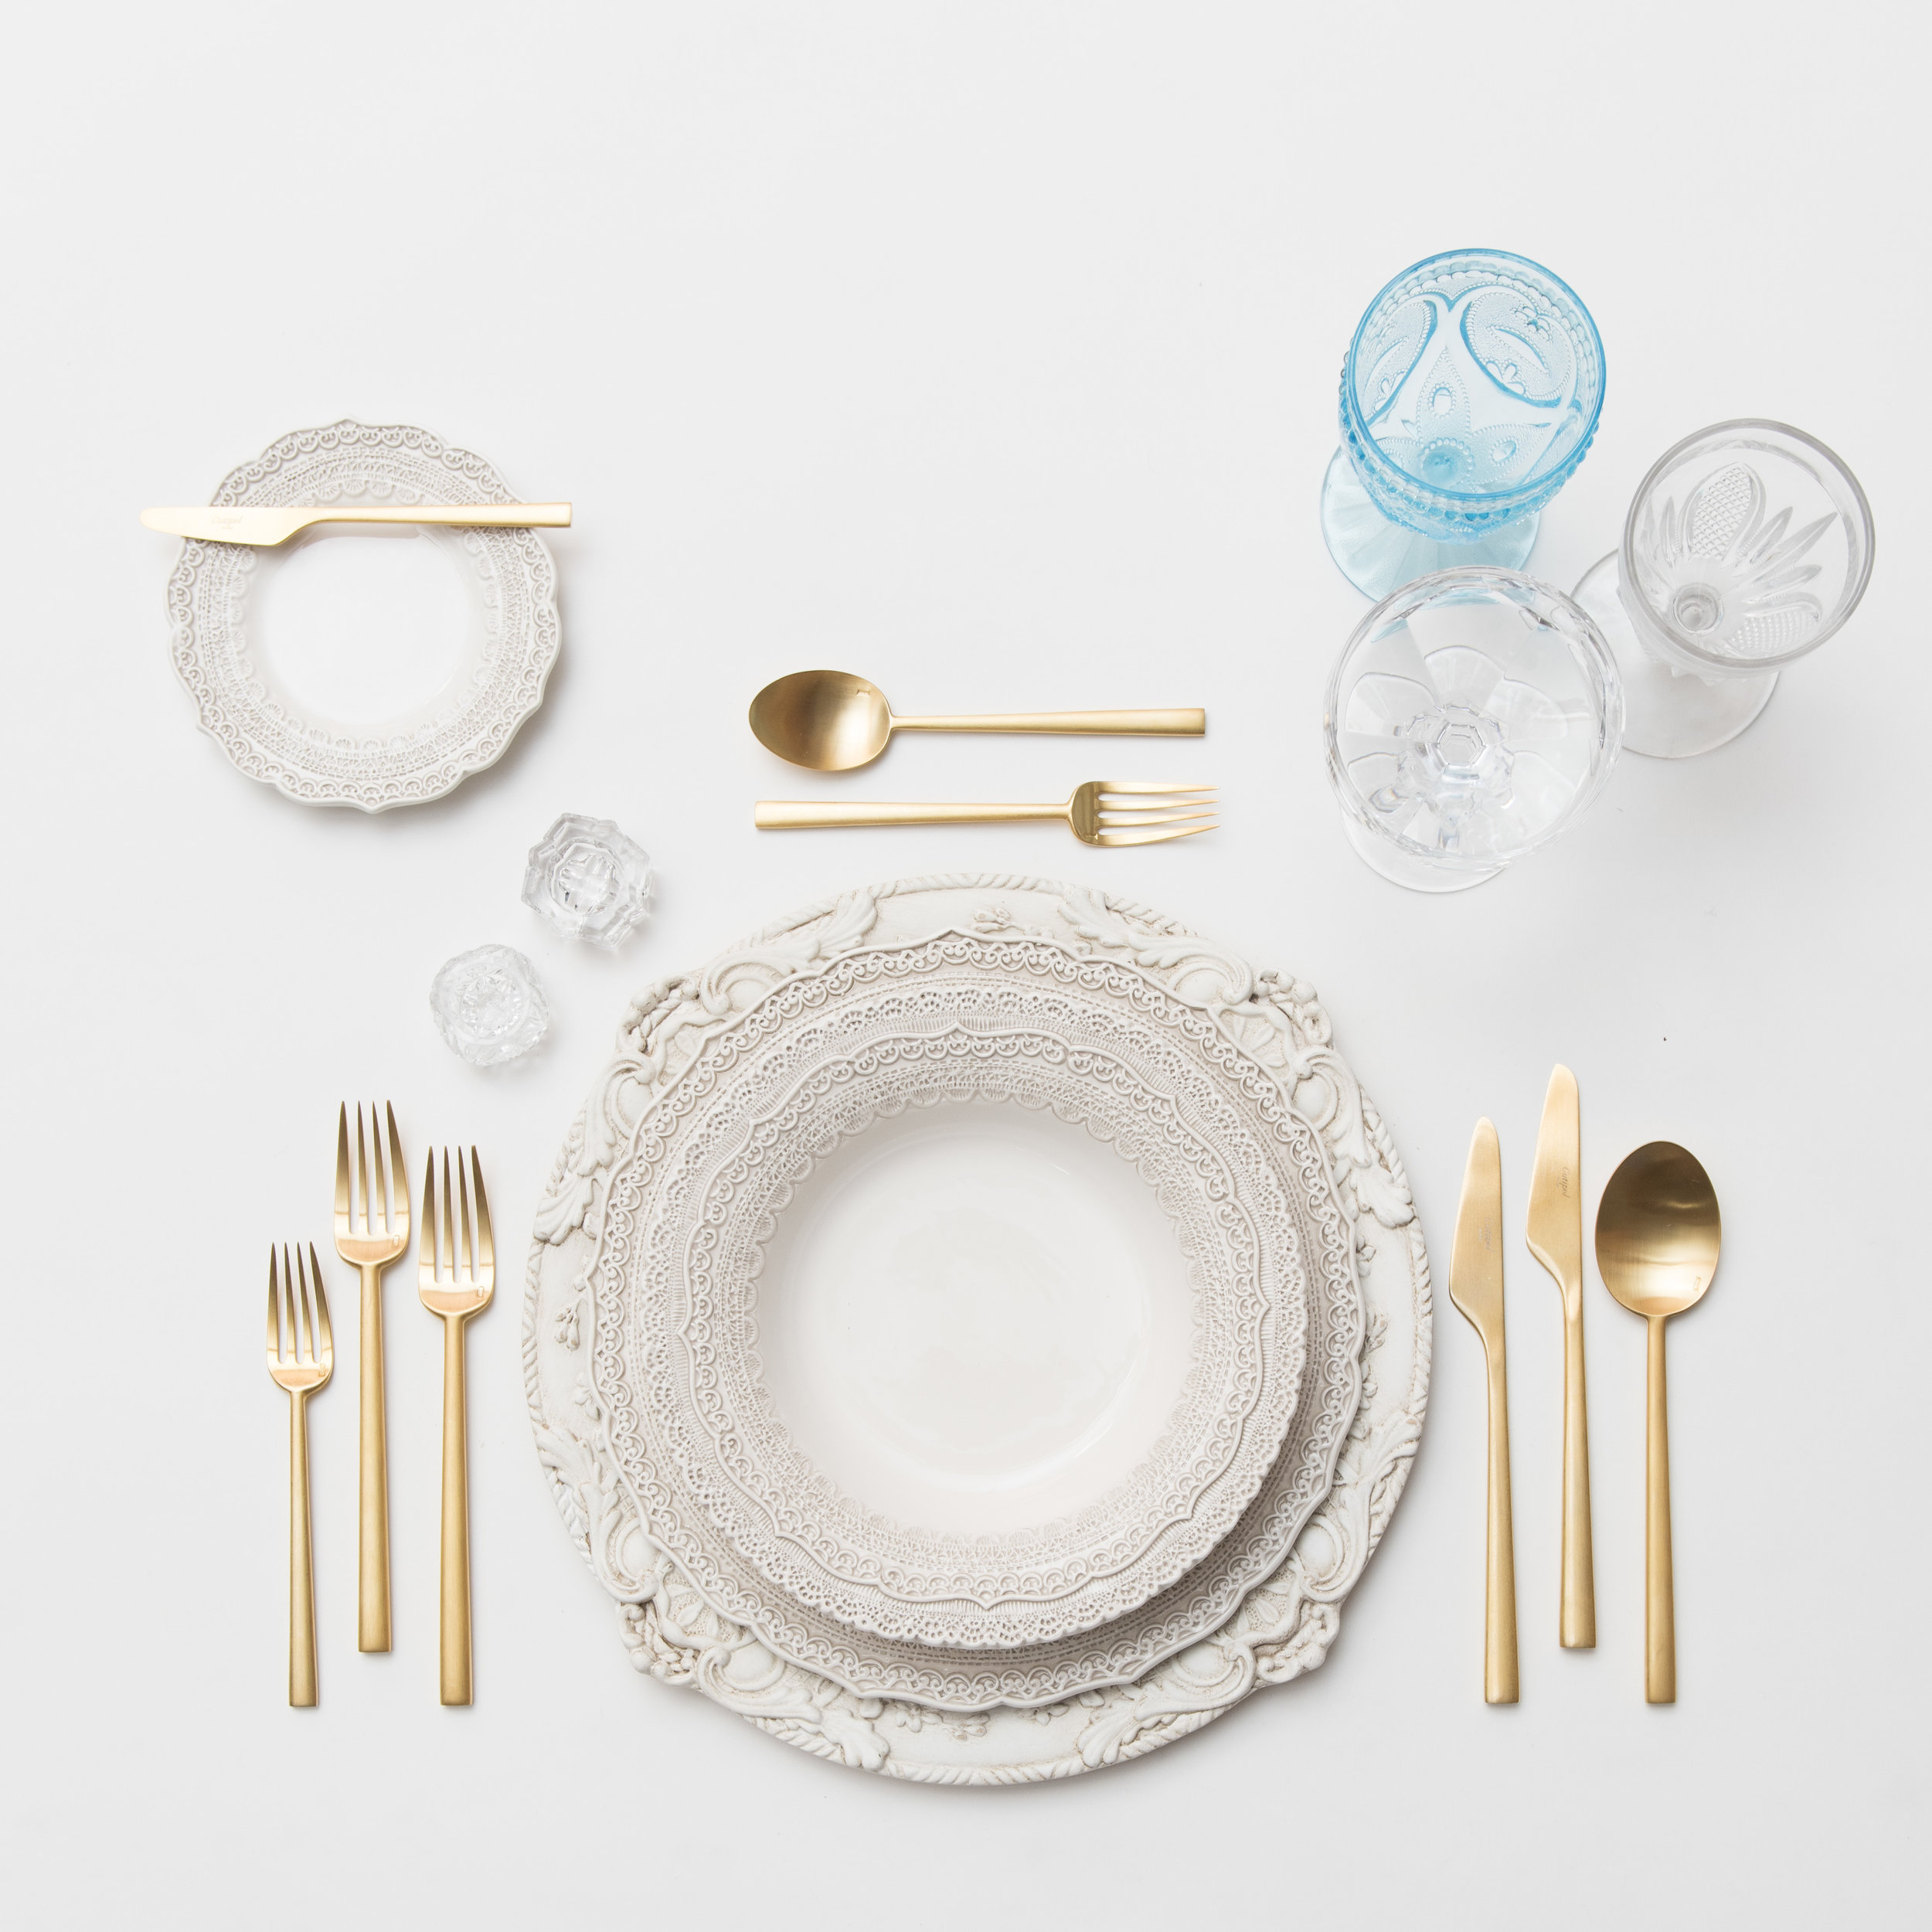 RENT: Verona Chargers in Antique White + Lace Dinnerware in White + Rondo Flatware in Brushed 24k Gold + Aqua Vintage Goblets + Early American Pressed Glass Goblets + Vintage Champagne Coupes + Antique Crystal Salt Cellars  SHOP: Verona Chargers in Antique White + Rondo Flatware in Brushed 24k Gold